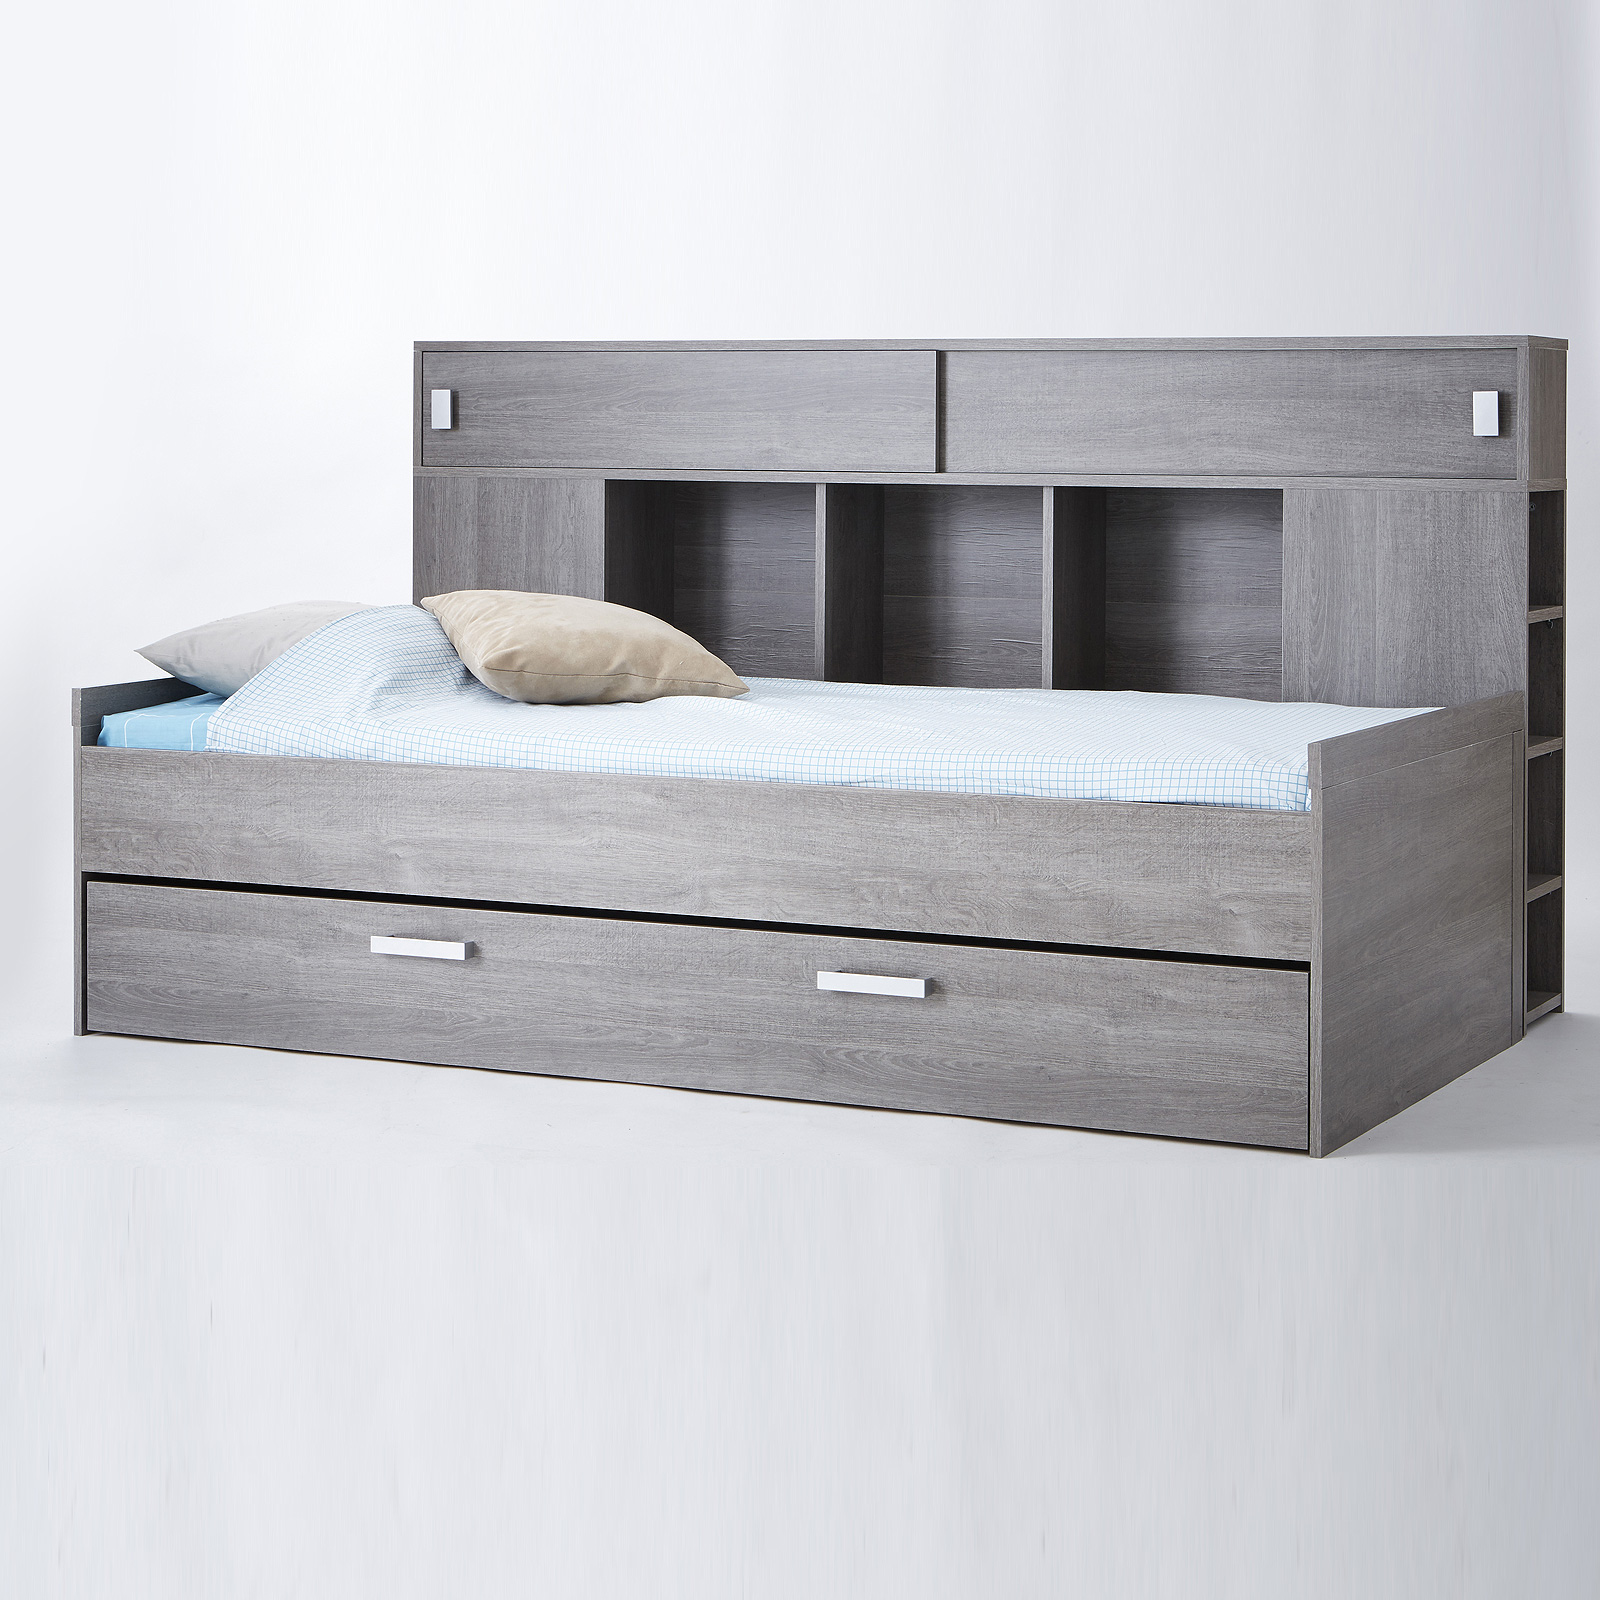 bett sherwood kinderbett jugendzimmerbett prata eiche mit bettkasten und regal ebay. Black Bedroom Furniture Sets. Home Design Ideas